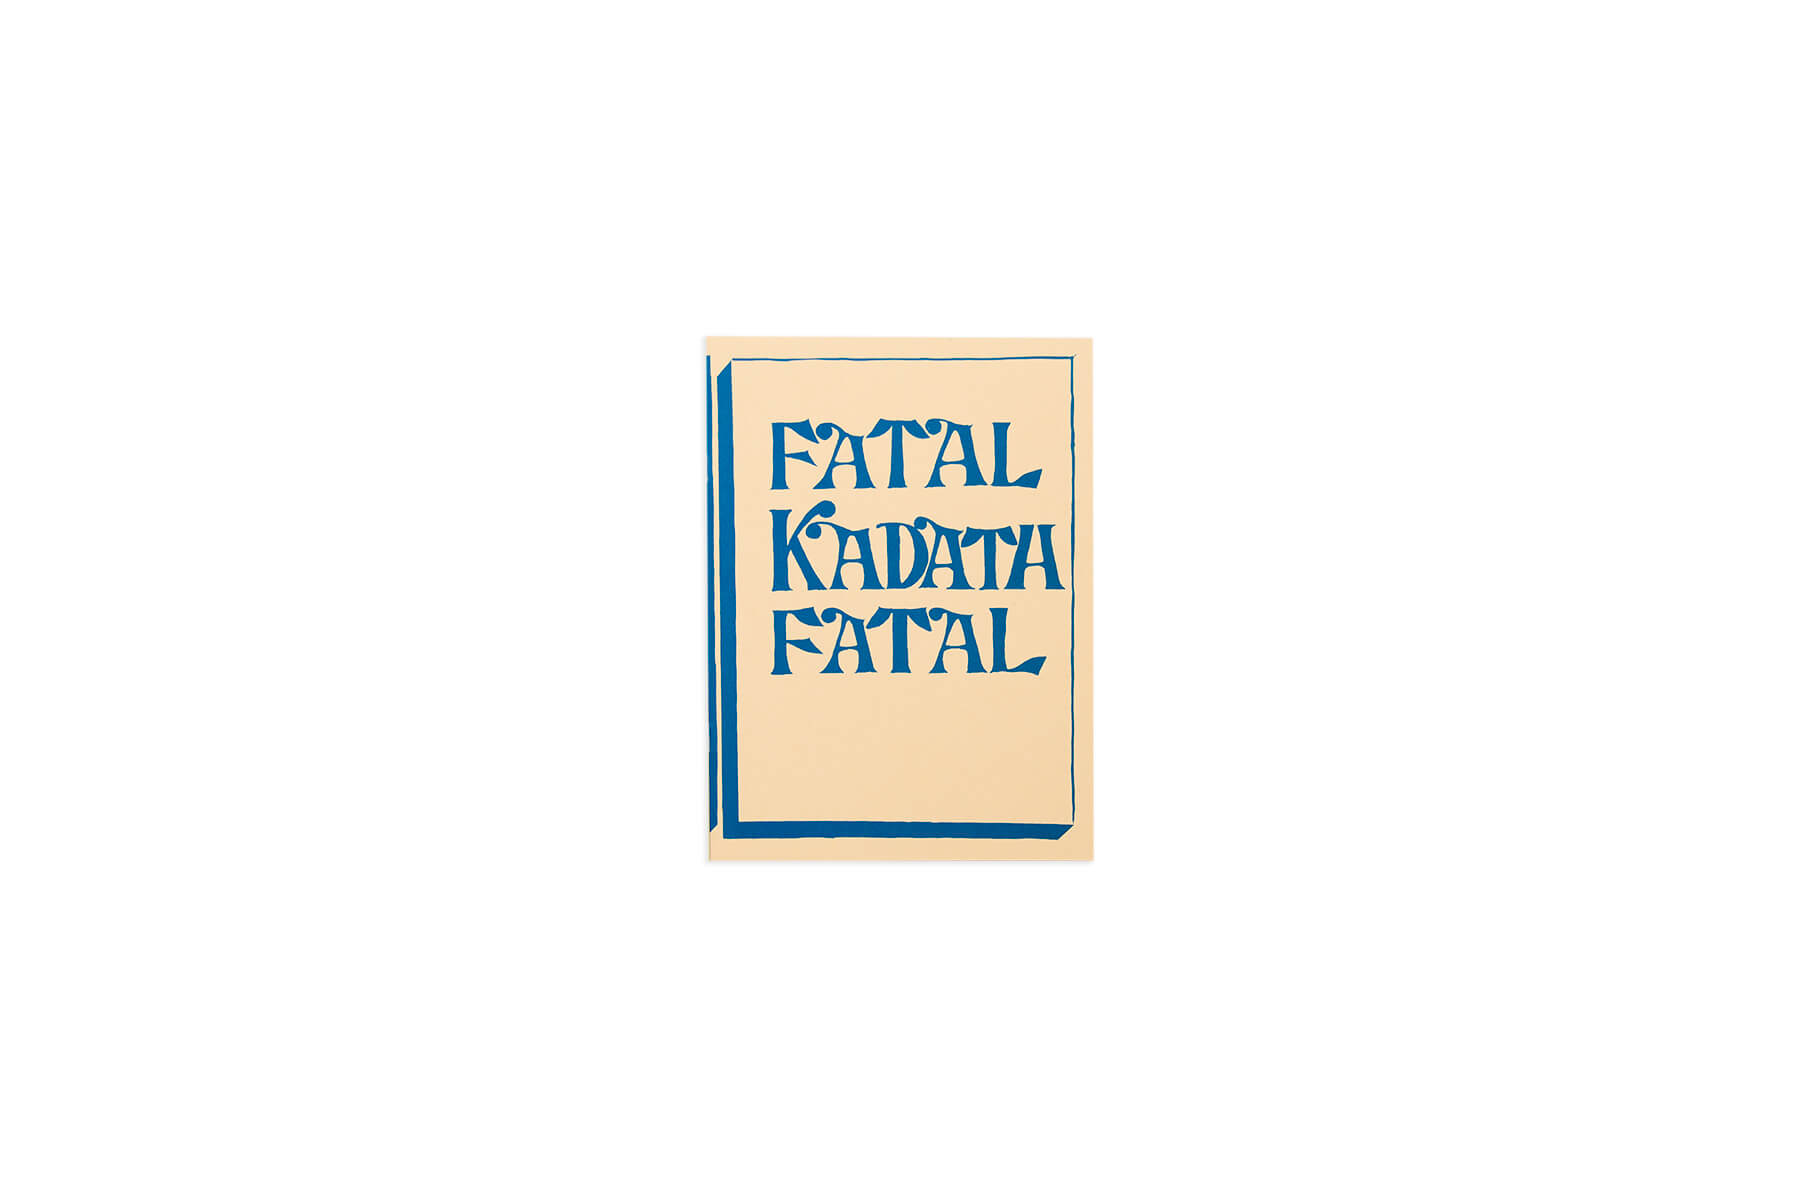 Product image of Fatal Kadath Fatal